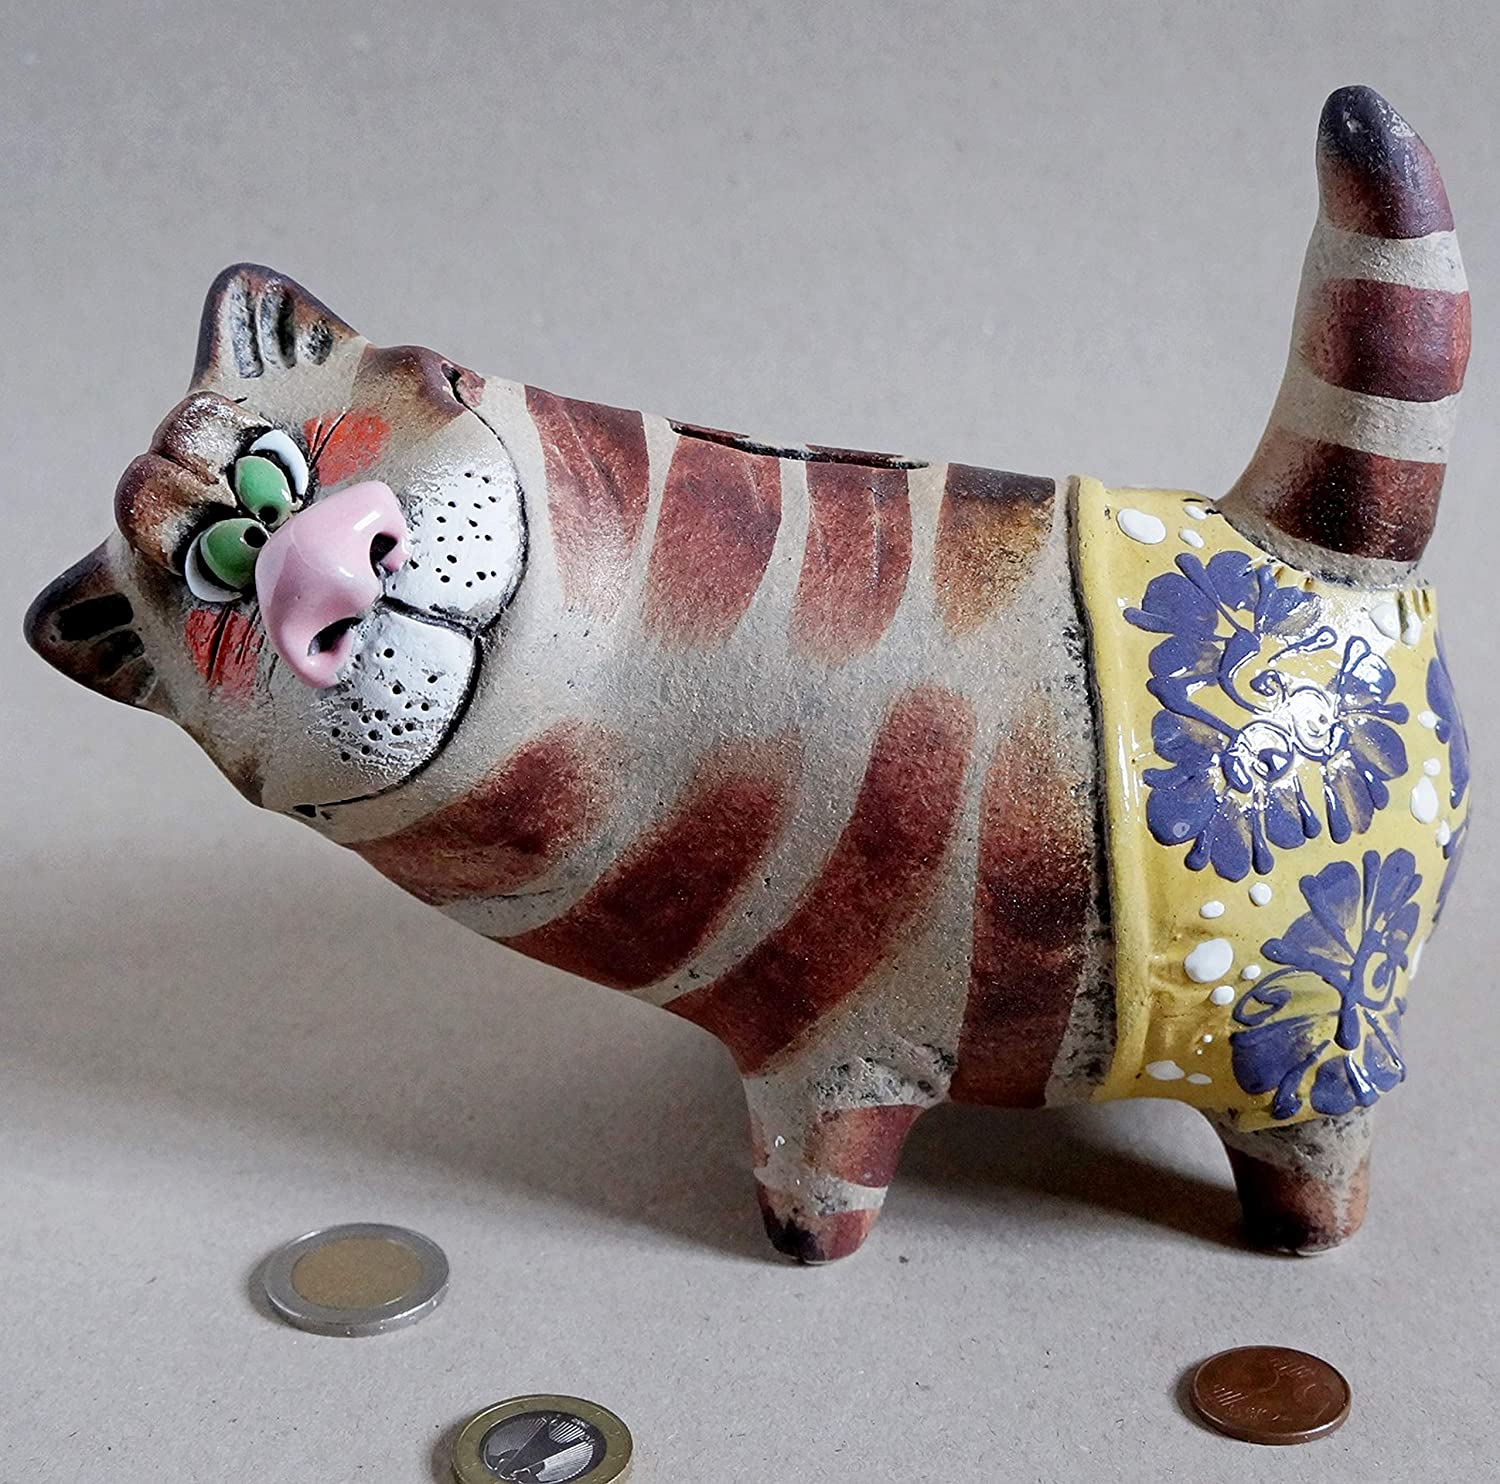 Handmade Piggy Bank Money box Cat ceramic sculpture Coin bank Cat lover gift Pottery animal , Best gift for 10 year old boy girl birthday One of kind